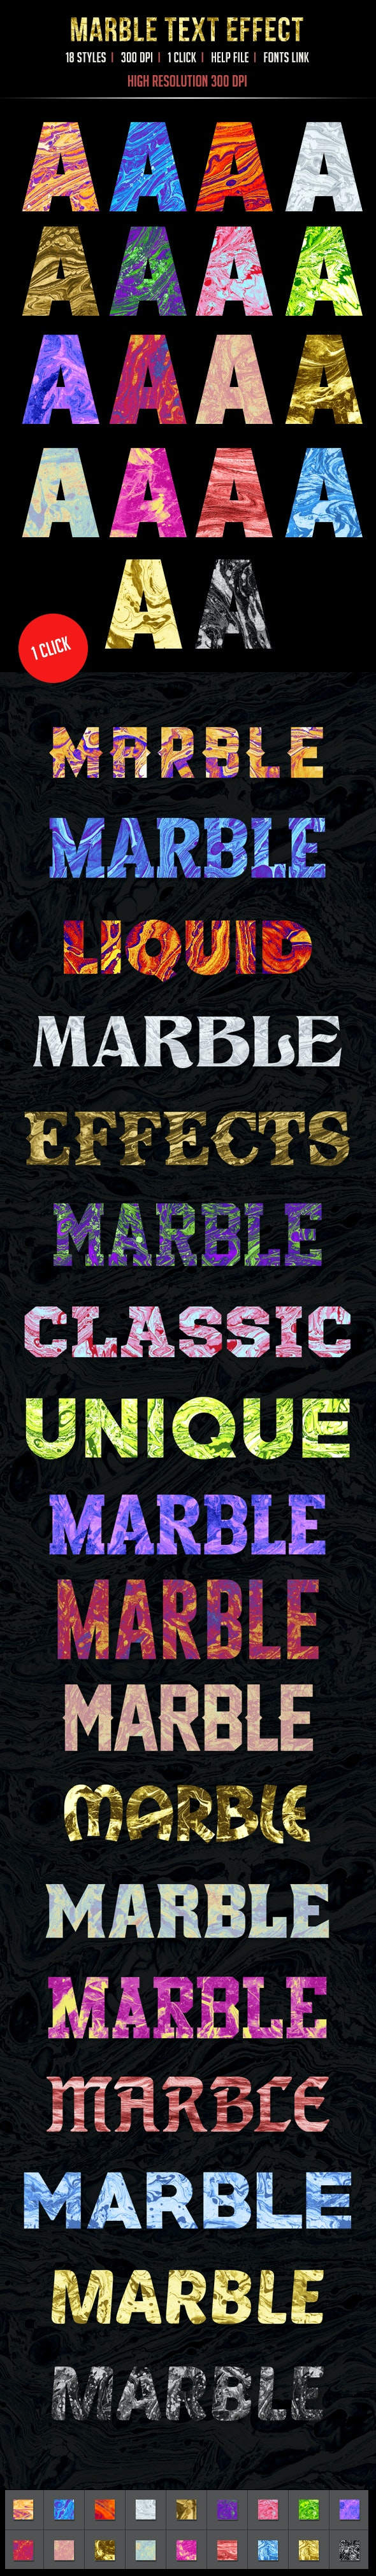 18 Marble Text Effects - Text Effects Styles